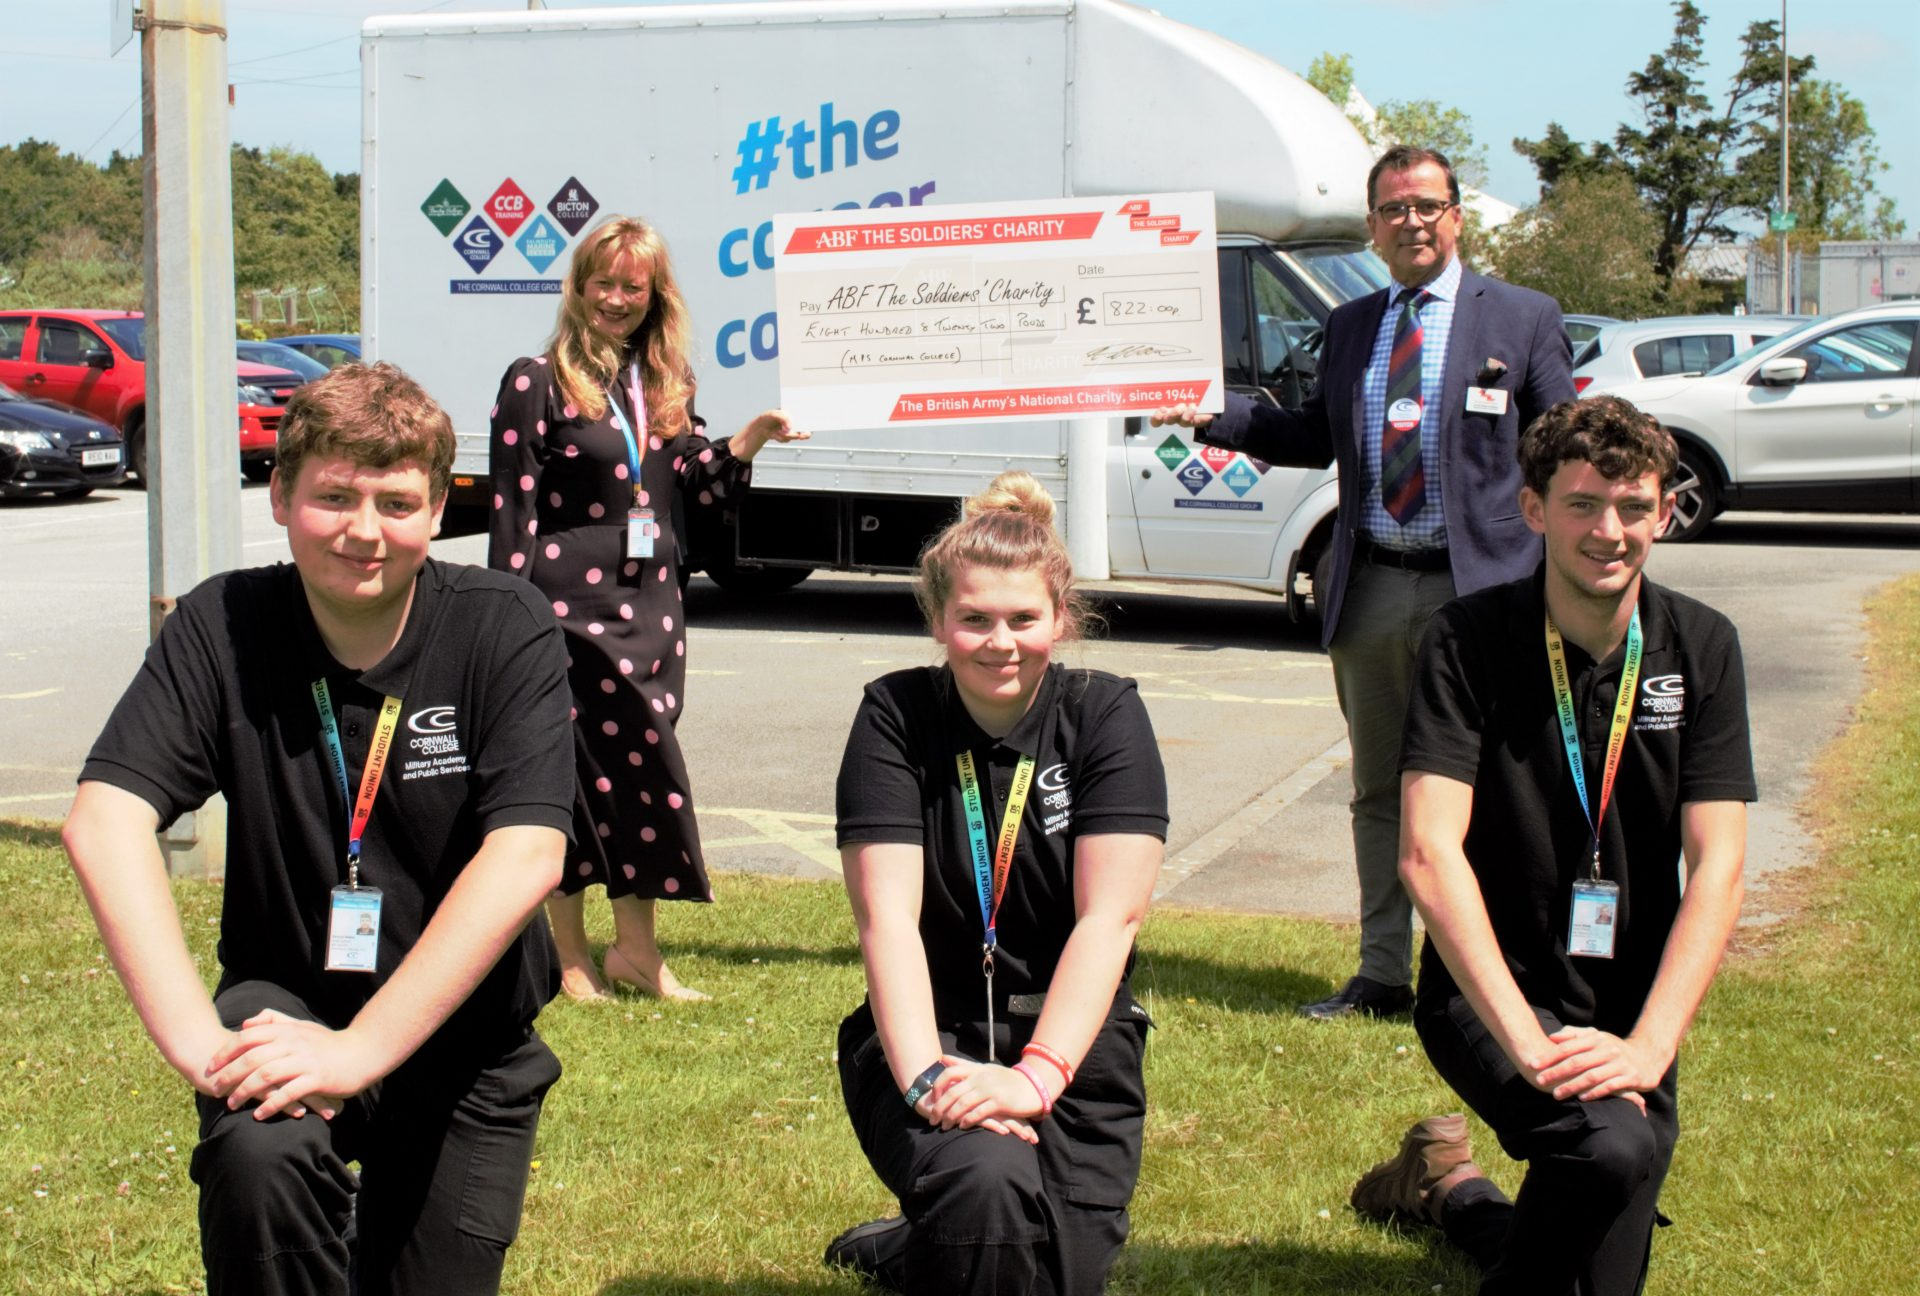 Armed forces charity 'exceptionally honoured' by student fundraising